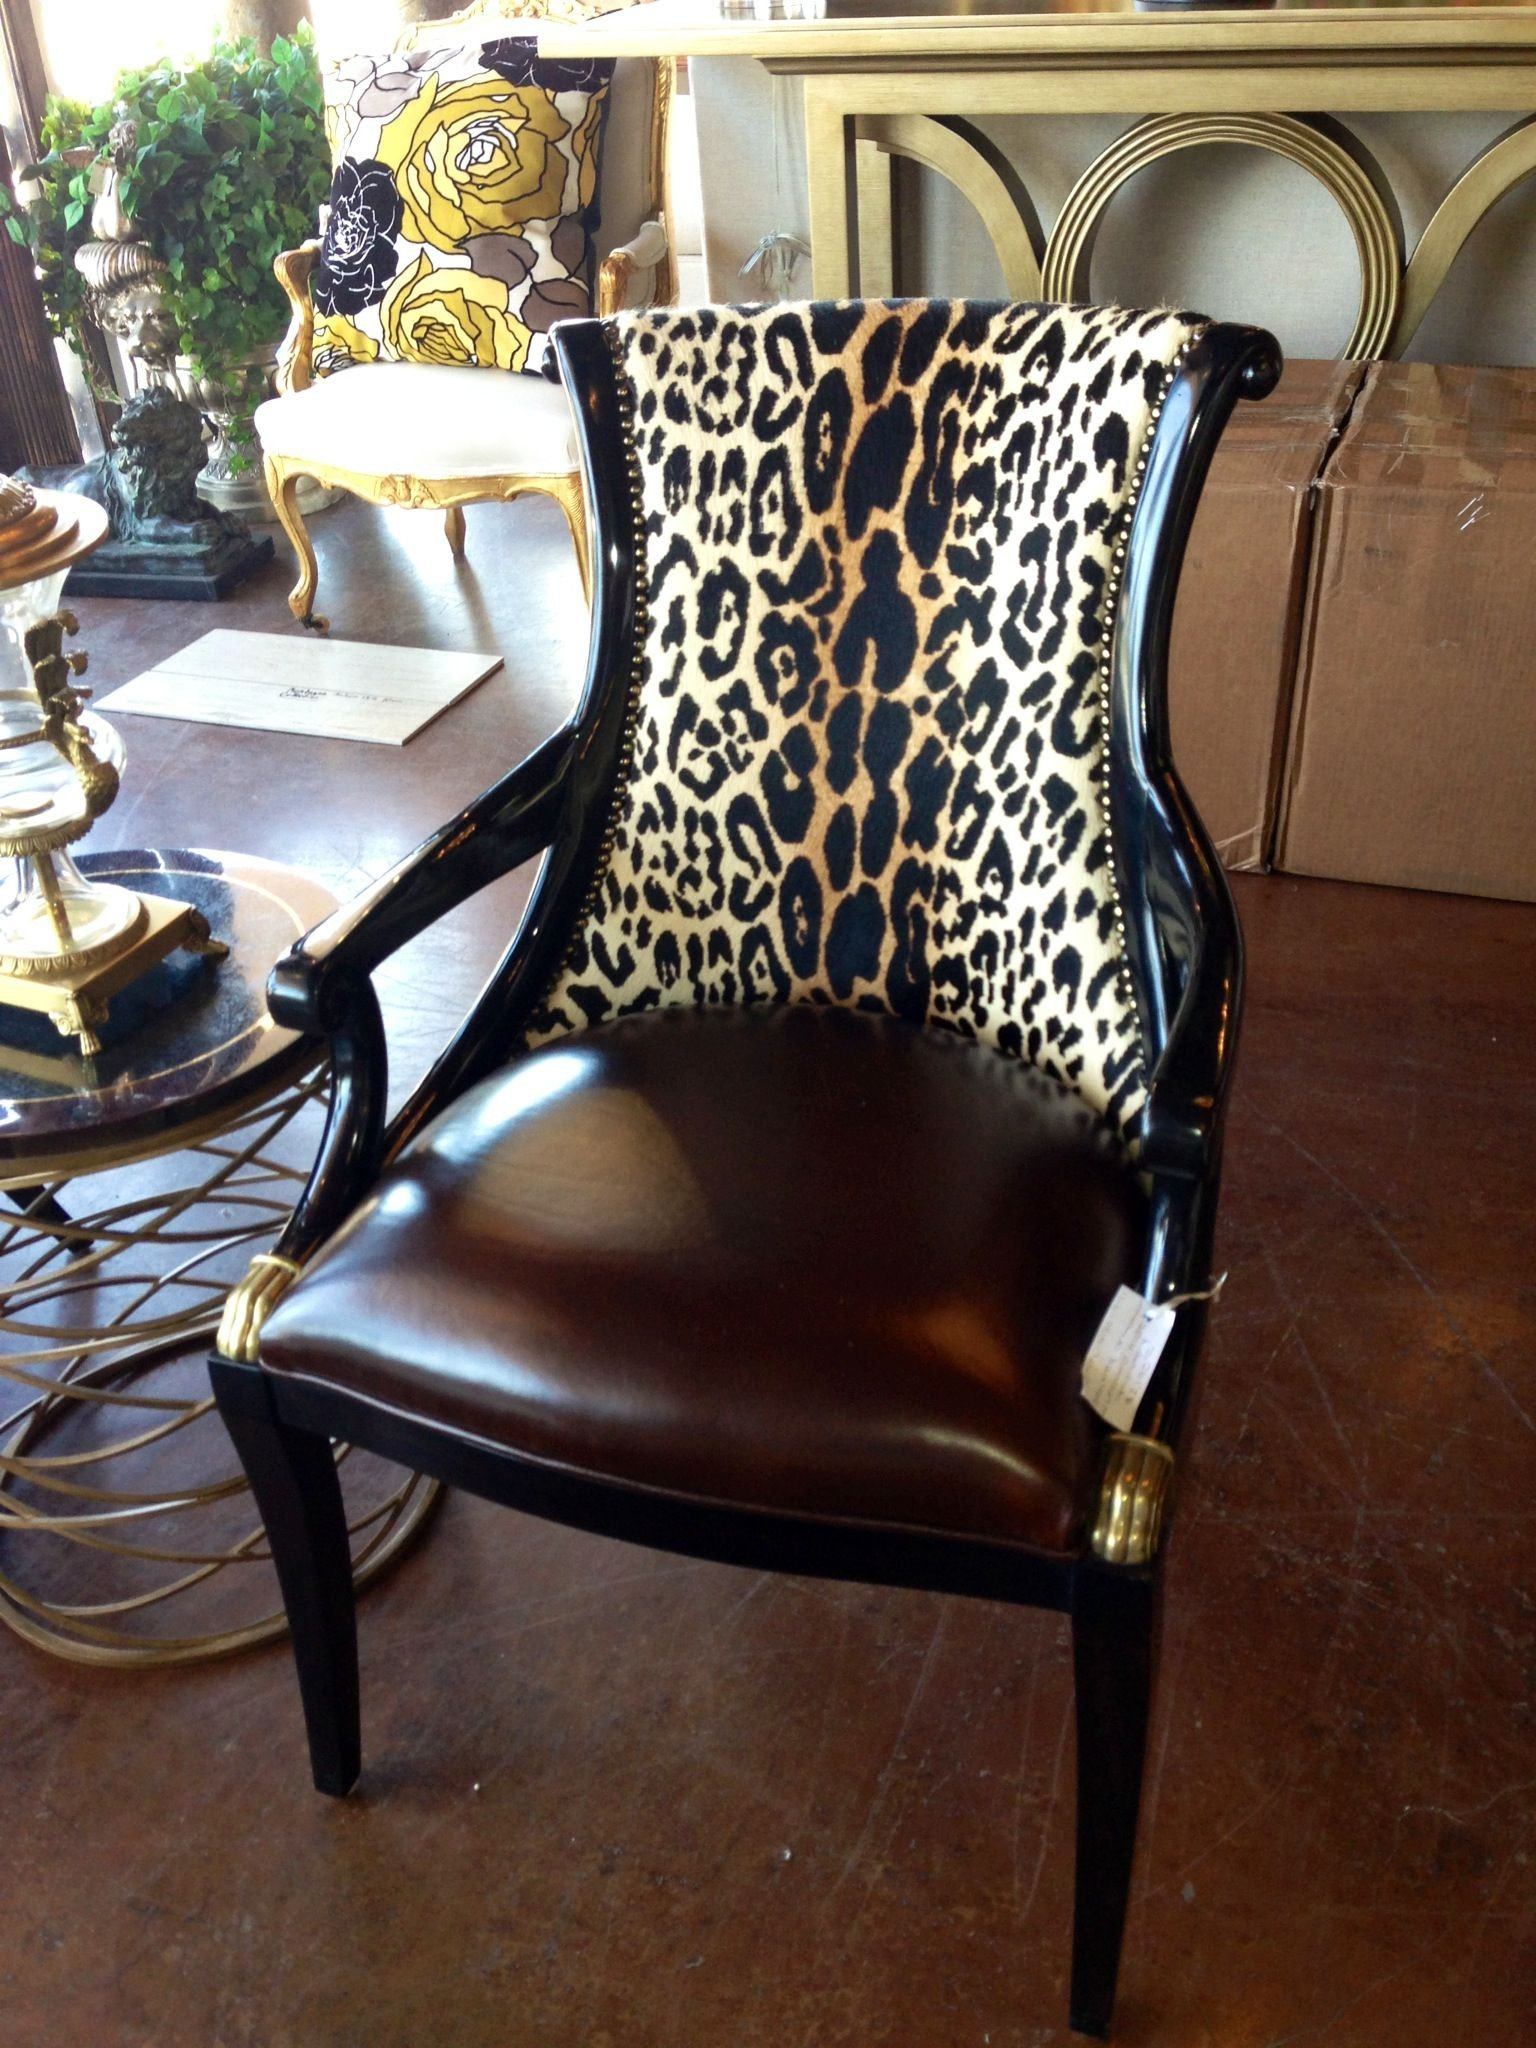 Animal Print Furniture Home Decor Beautiful Brittnay Blake Interiors Houston Animal Print Leather and Nailhead Trim